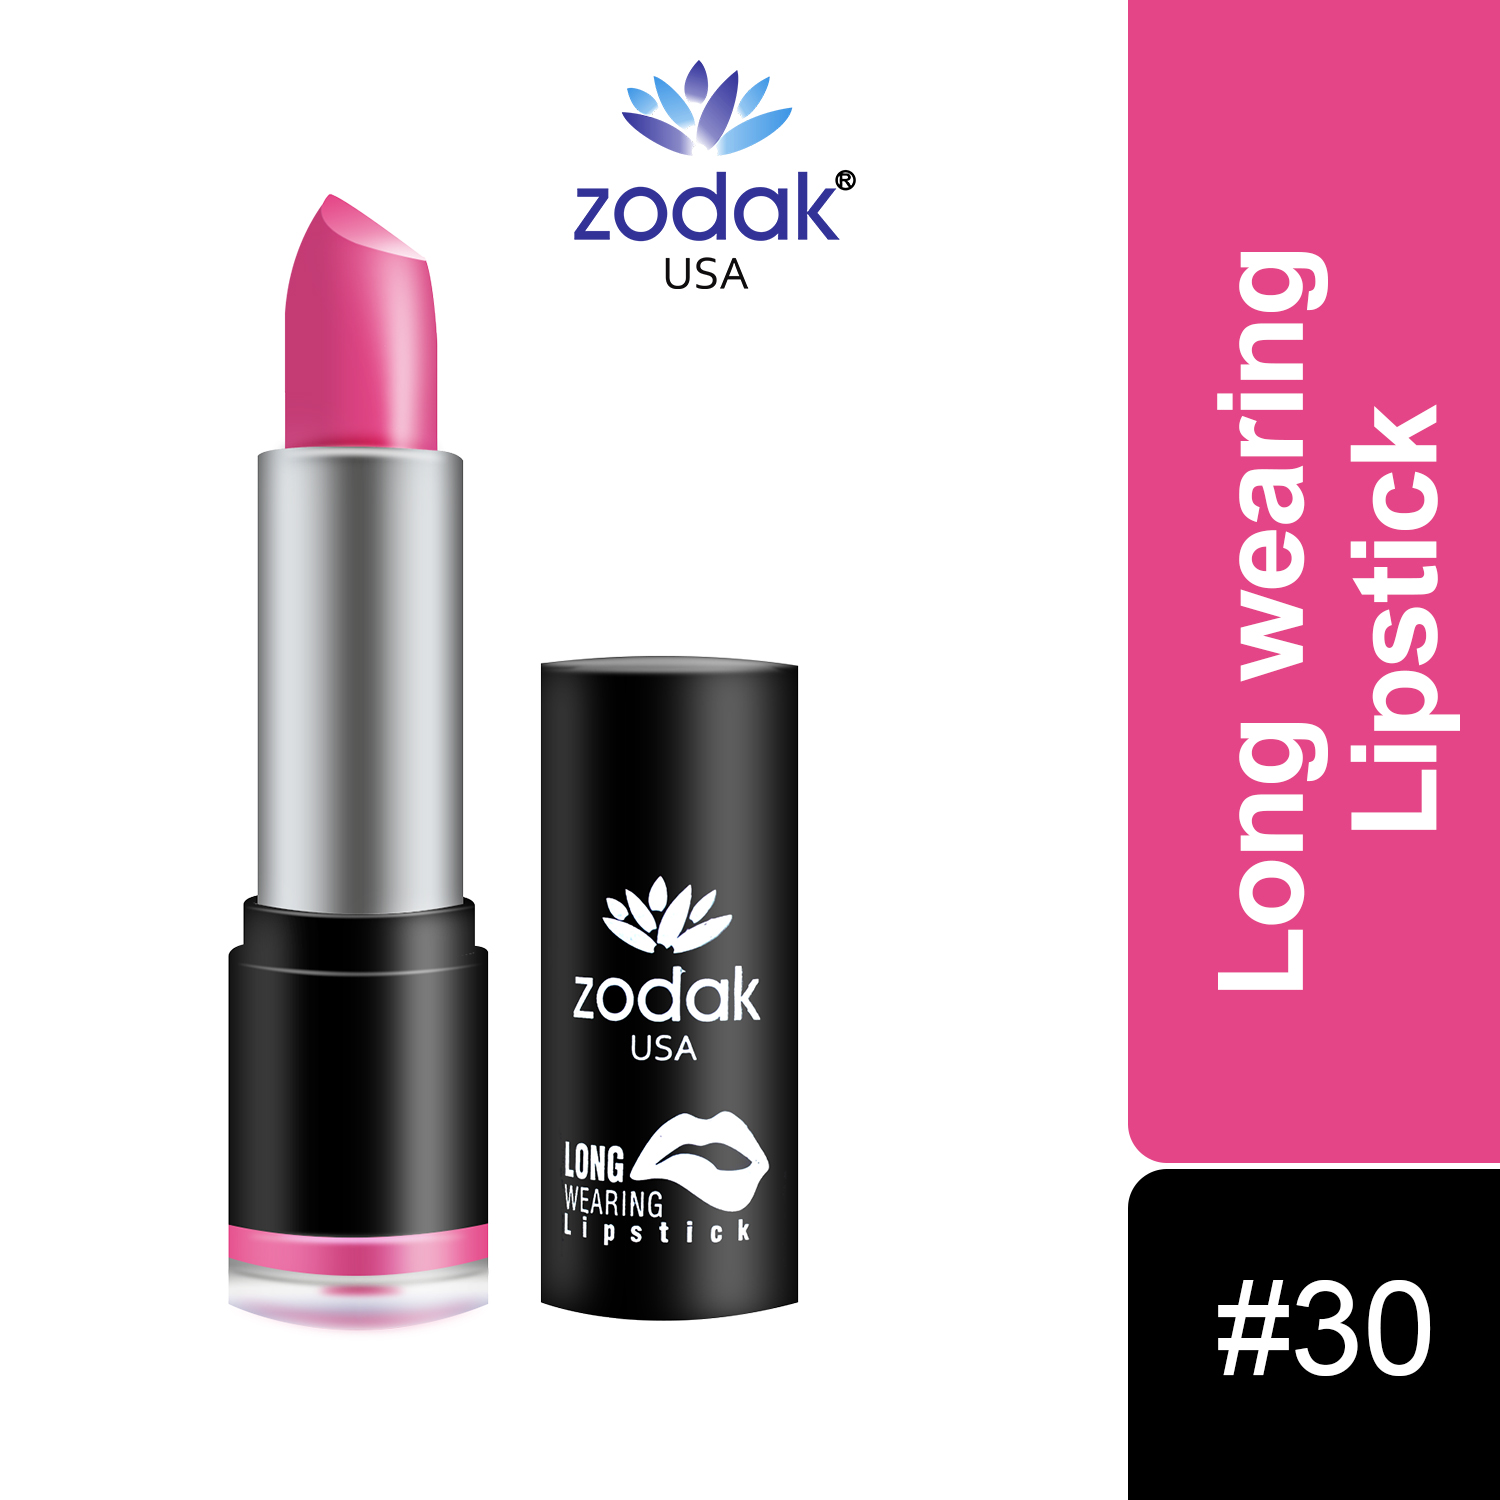 ZODAK Long Wearing Lipstick 3.8g (Tommorrow, 3.8 g)